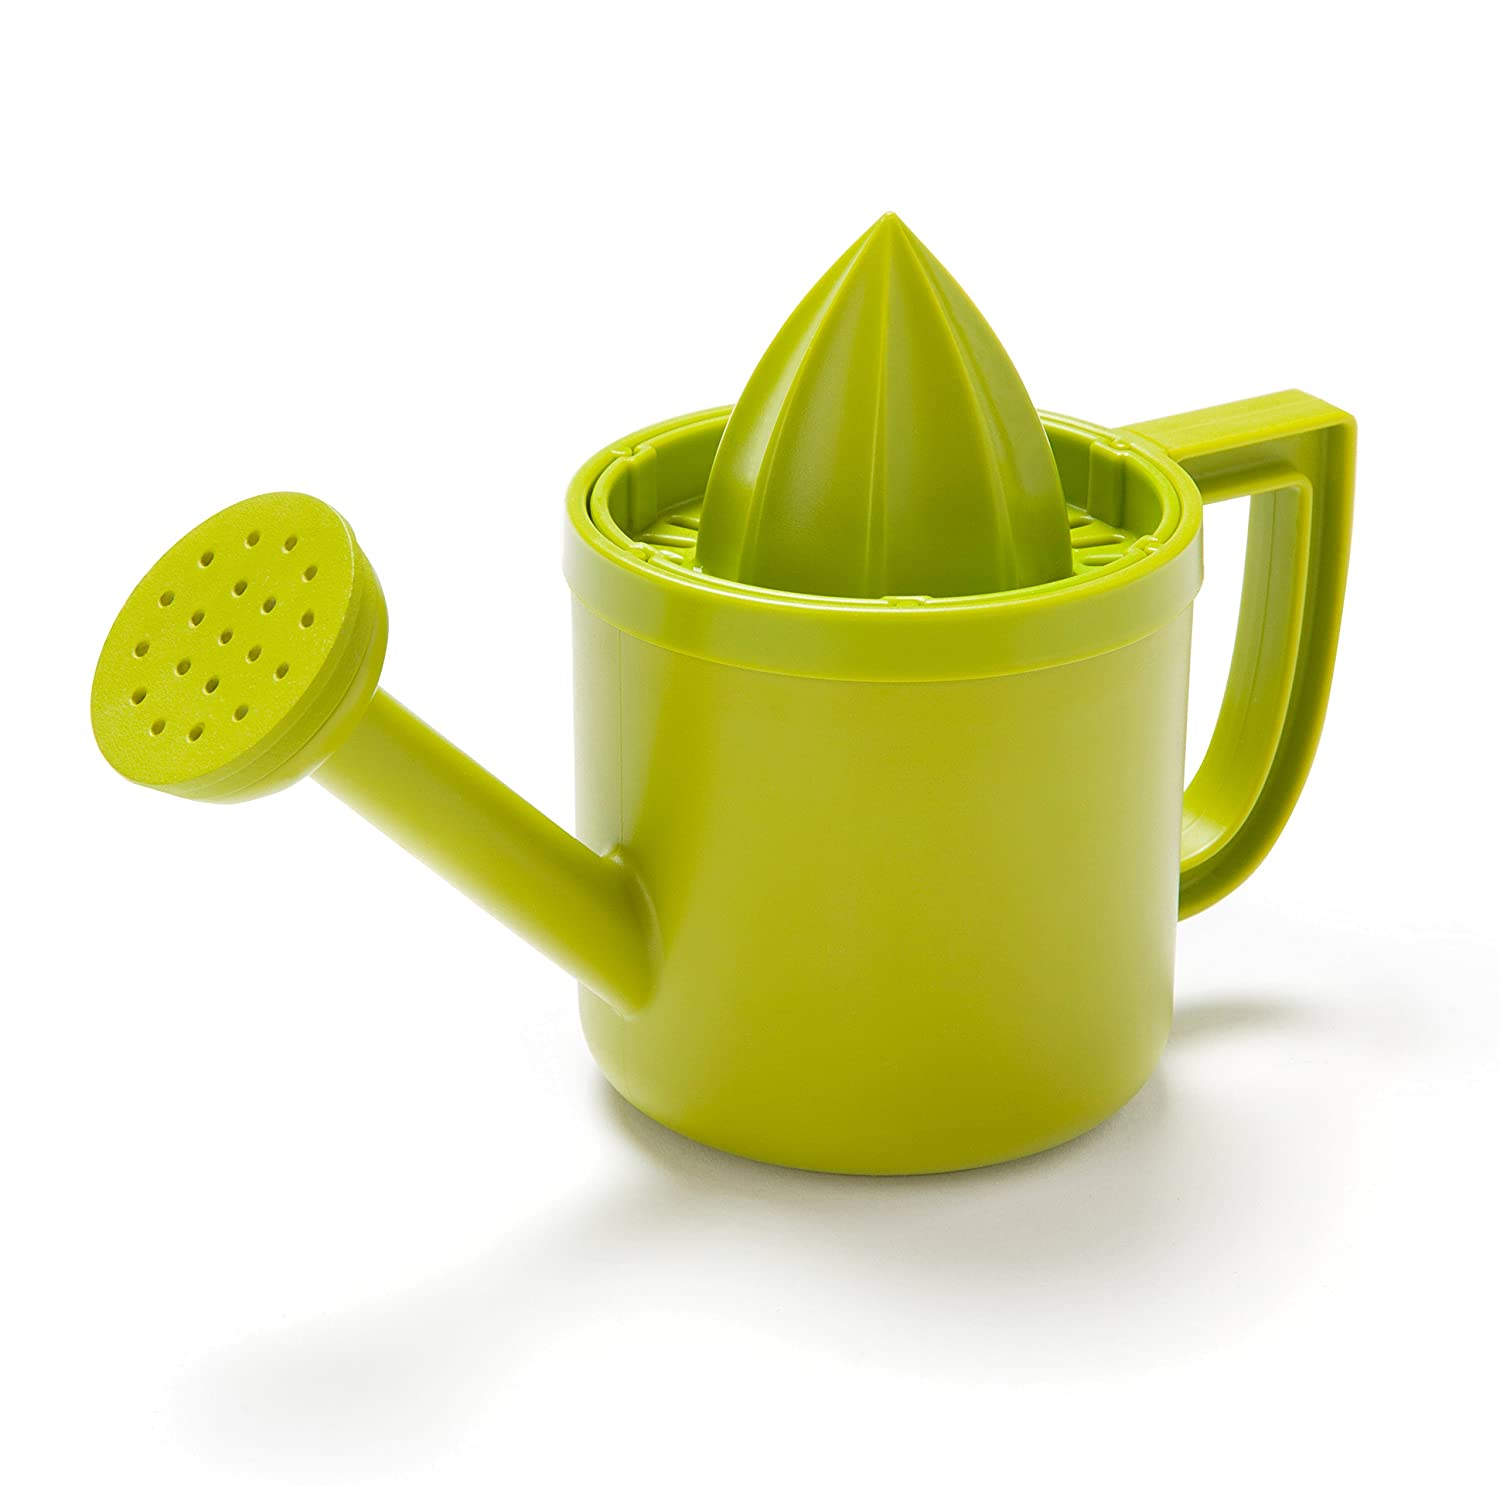 LEMONIERE by PELEG DESIGN: Original Watering Can-Shaped Juicer, Green Plastic Squeezer with Pourer for Lemon or Citrus Juice with Flip Lid for Storage